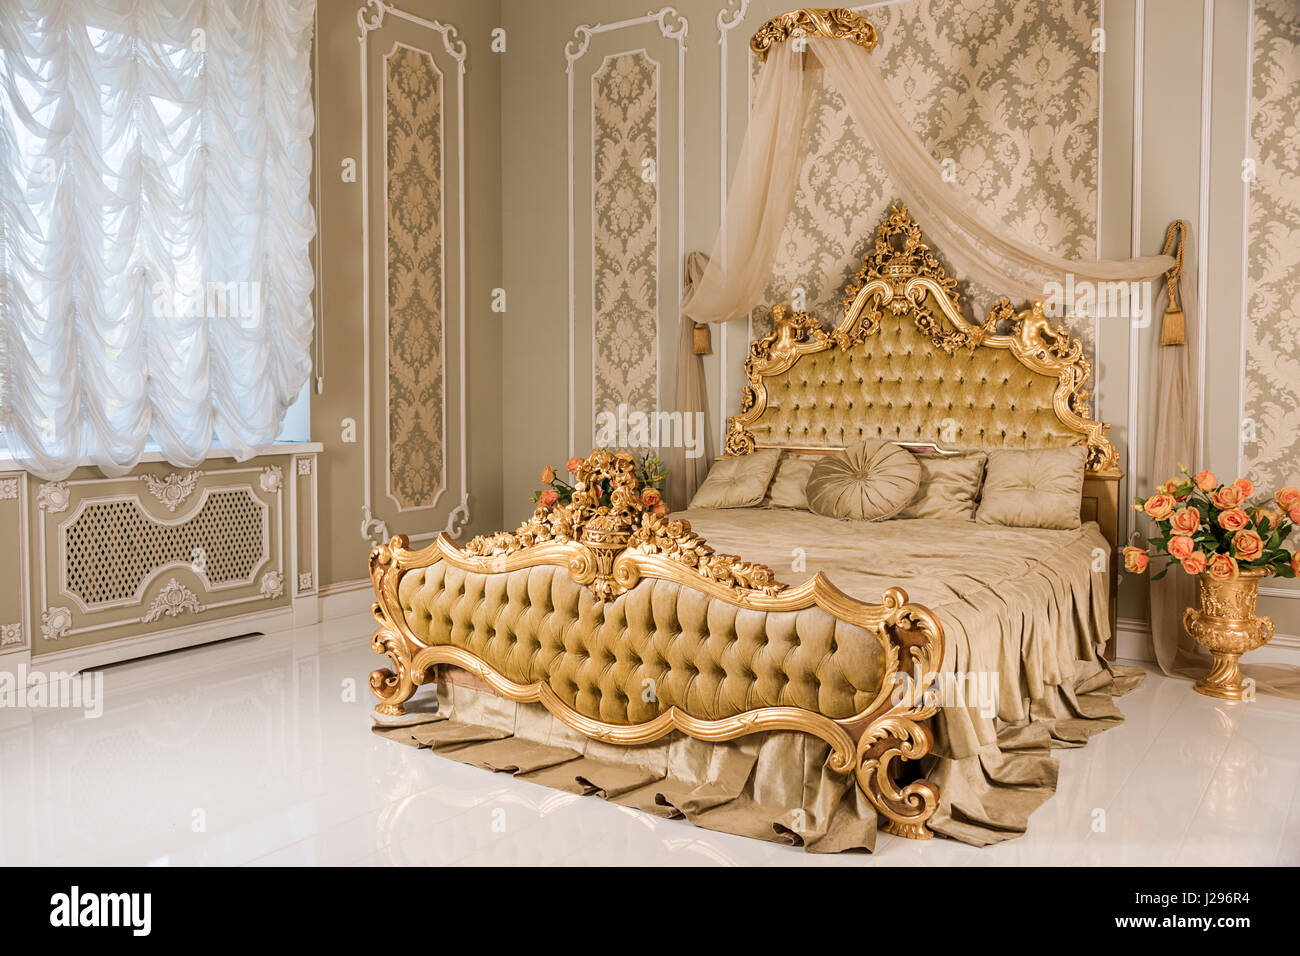 luxus schlafzimmer in hellen farben mit goldenen m bel. Black Bedroom Furniture Sets. Home Design Ideas